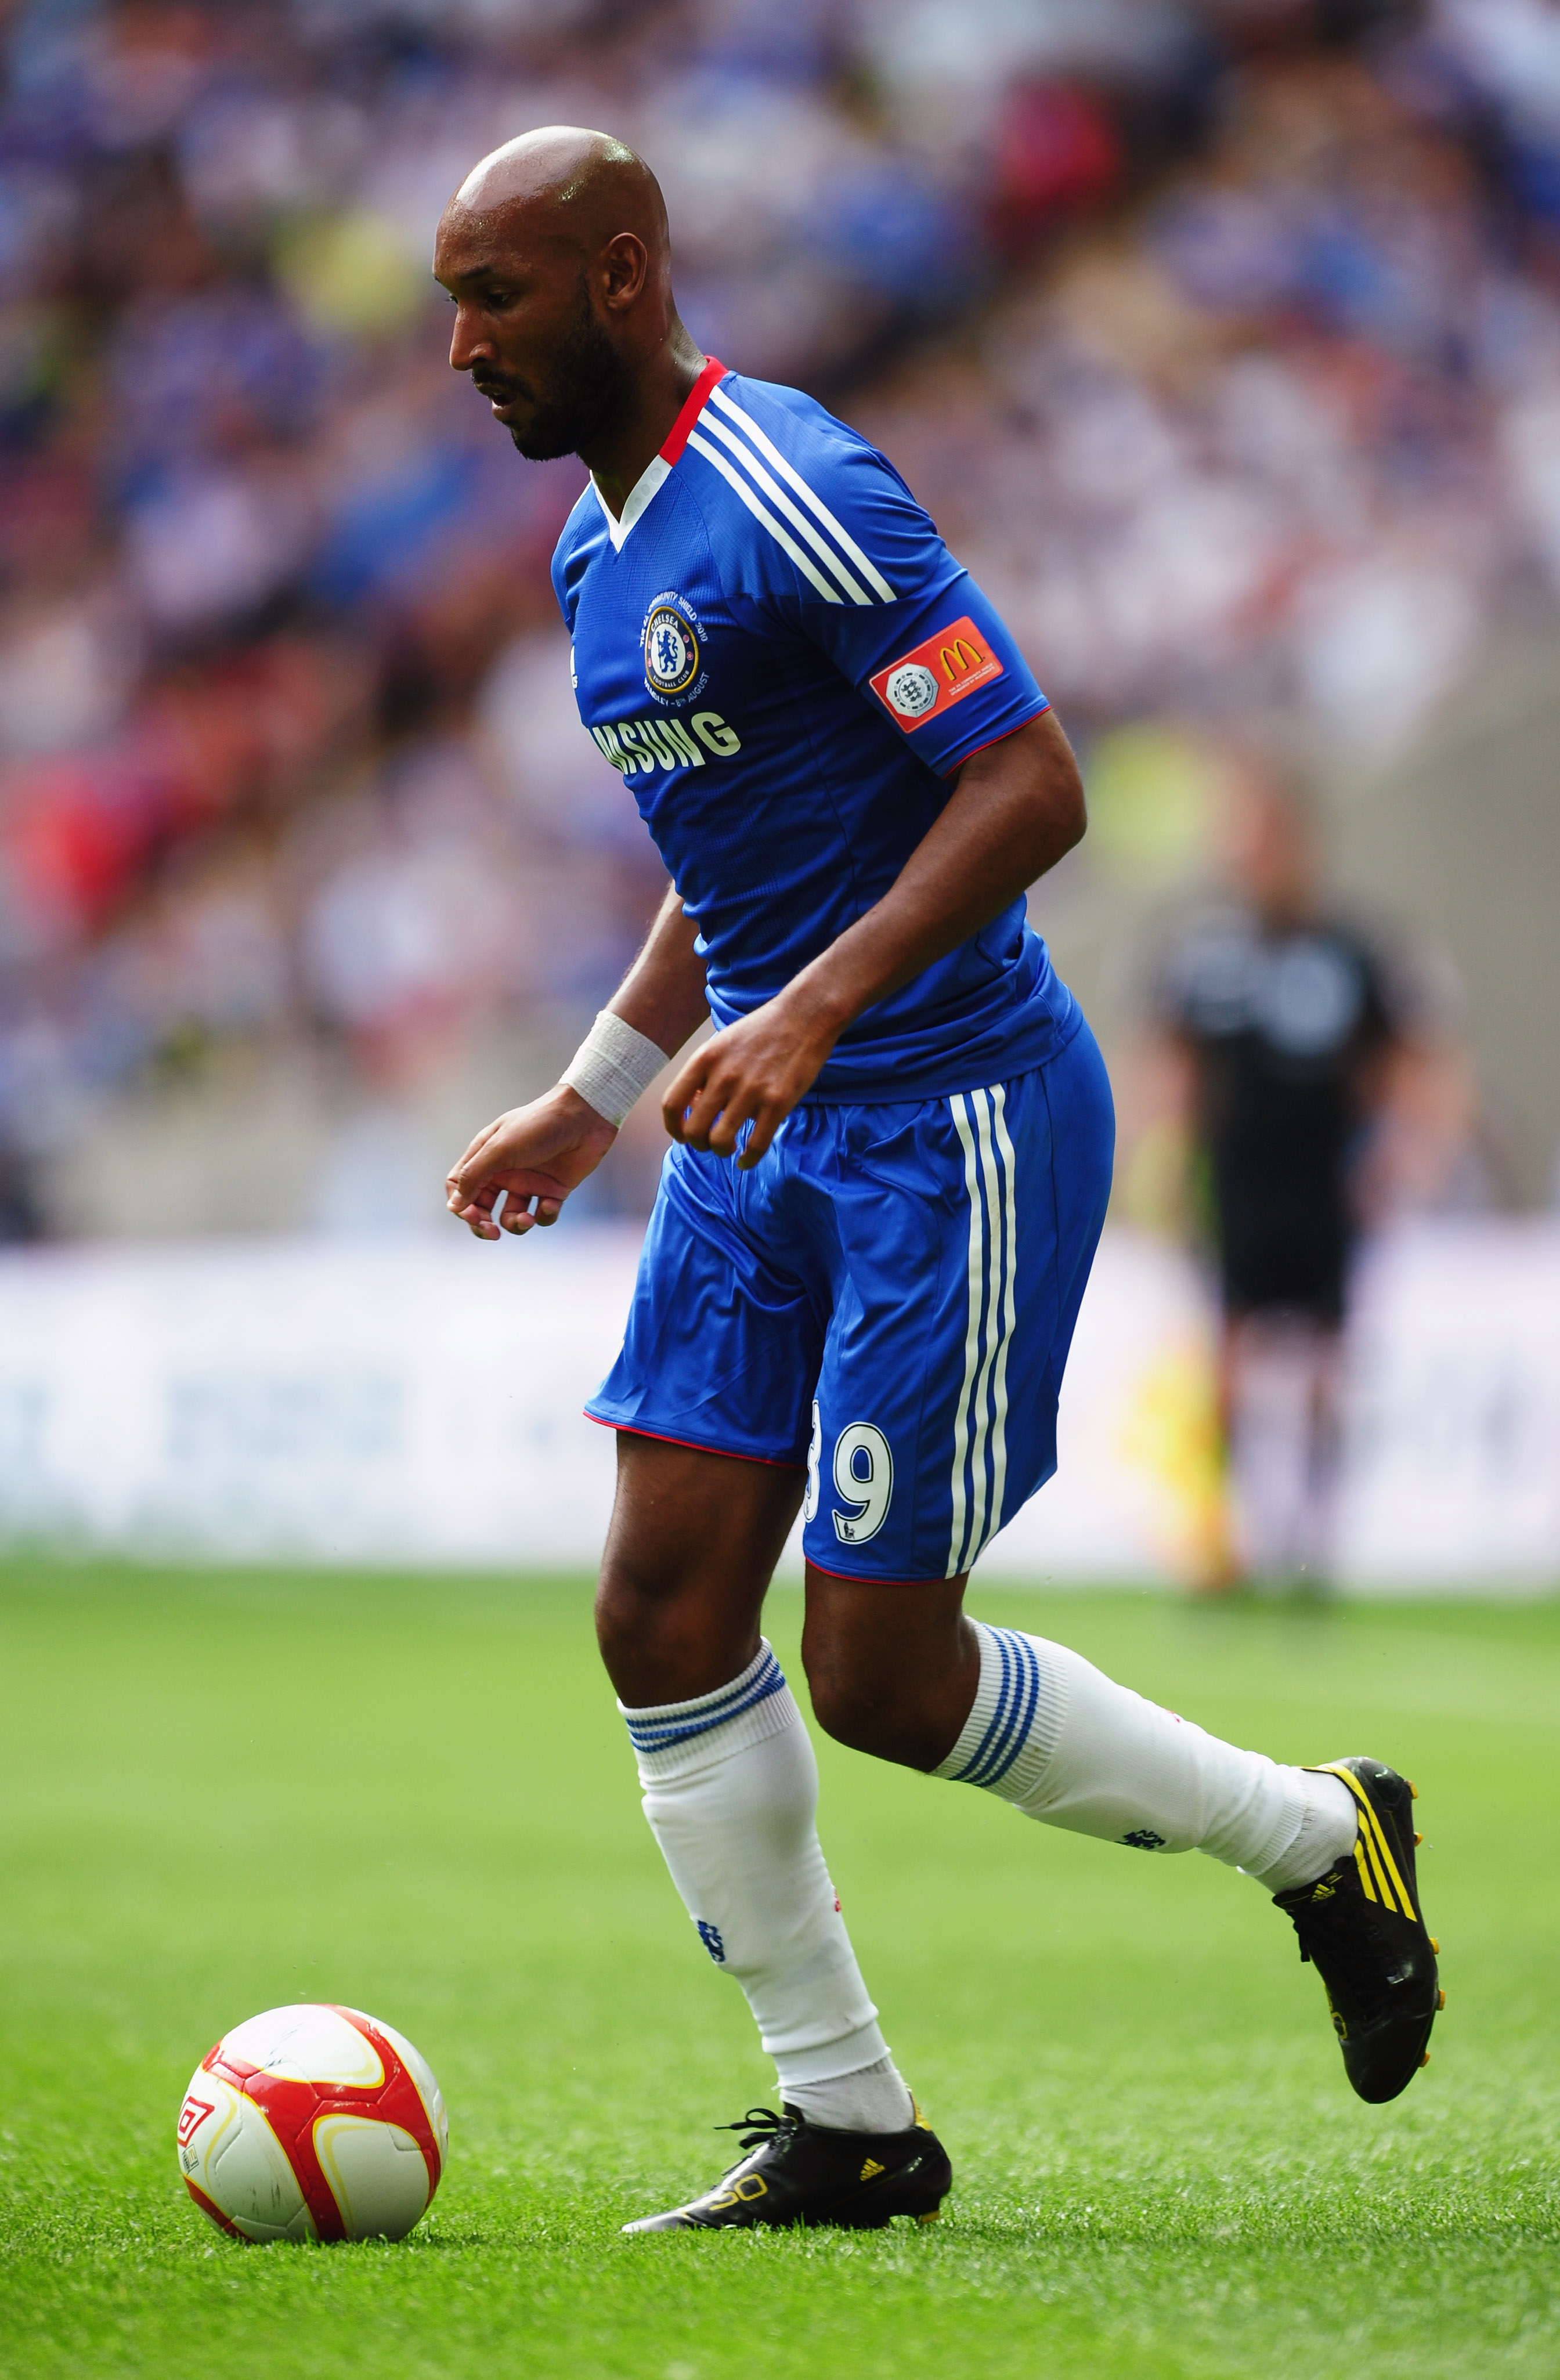 Anelka tends to slow the game down too often and lacks the same passion as his teammates